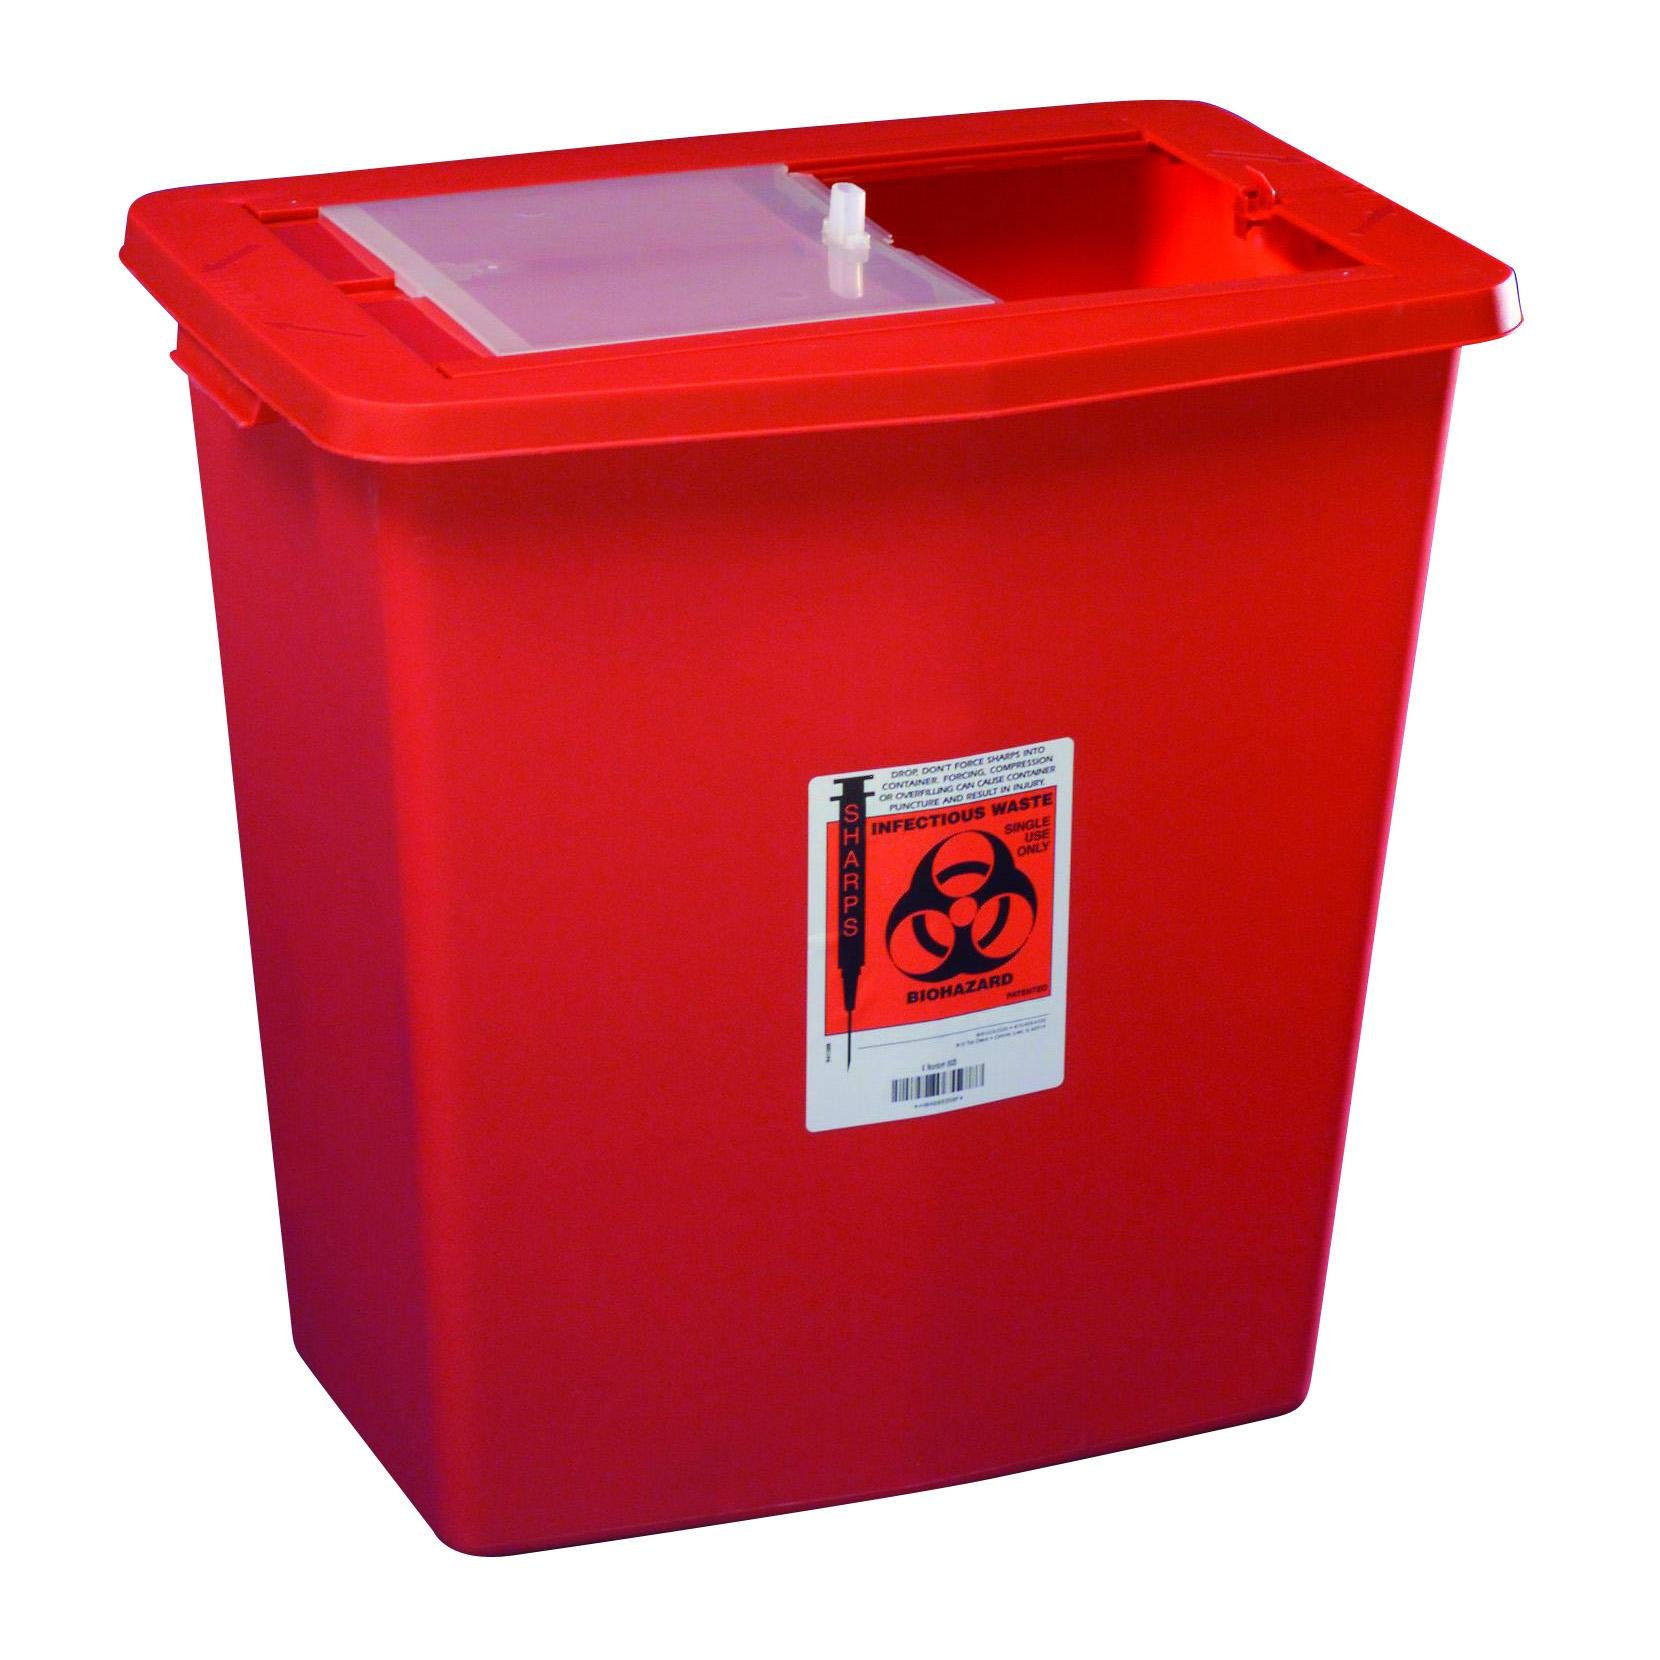 Sharps Container, 12 Gallon Red W/Sliding Lid, 1 ea